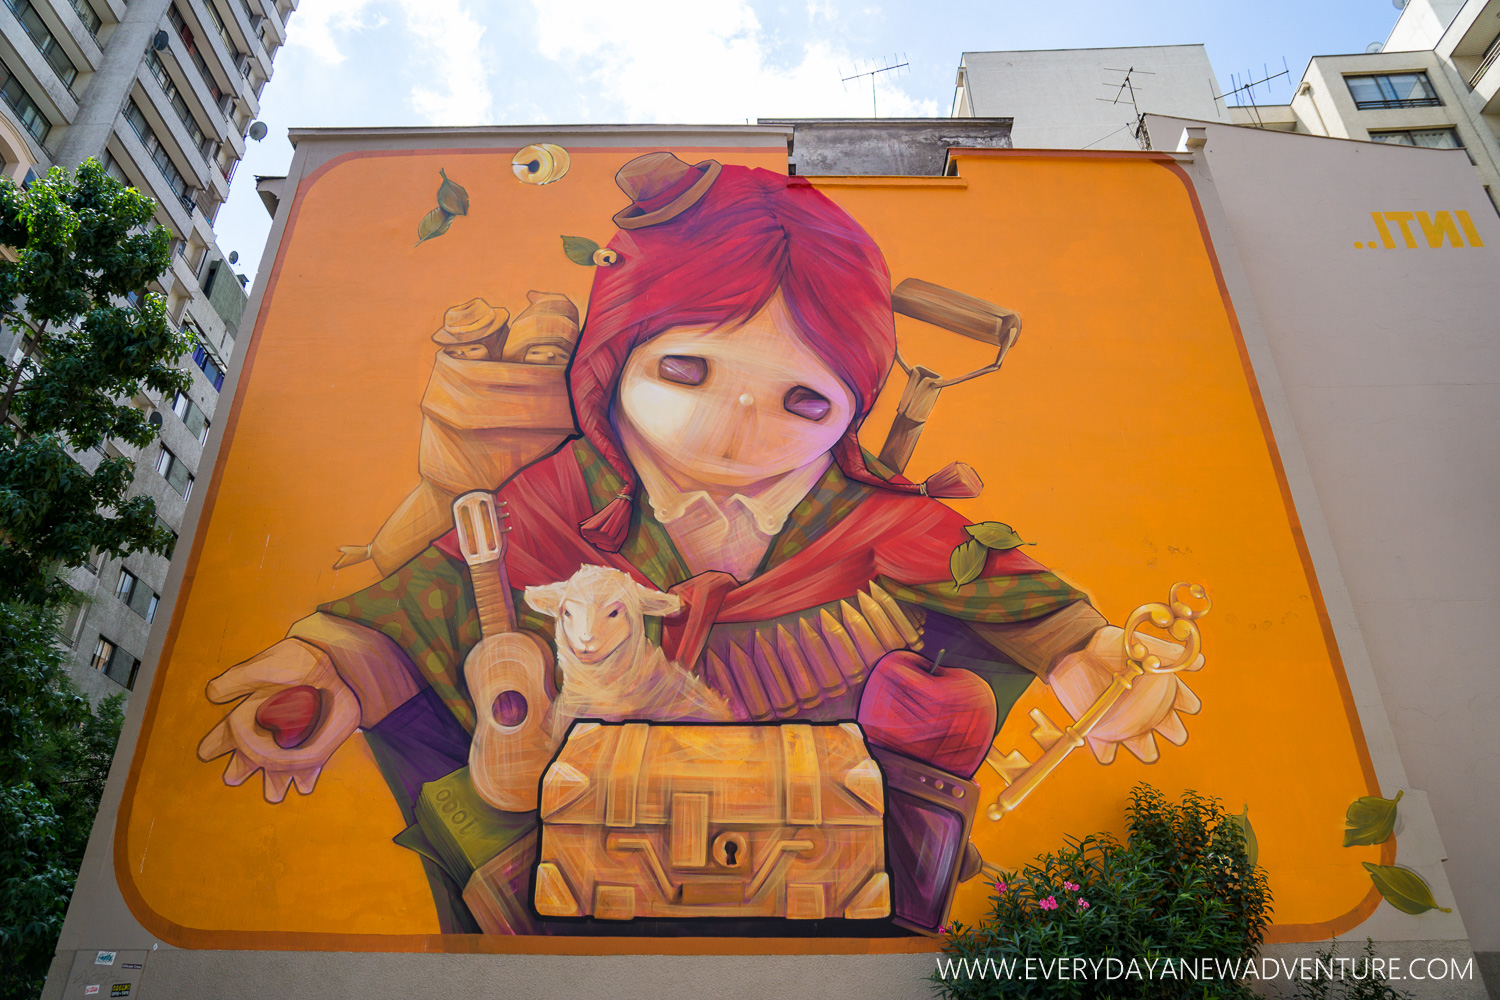 A new piece by famous graffiti artist Inti. We first learned about him in Bogota.